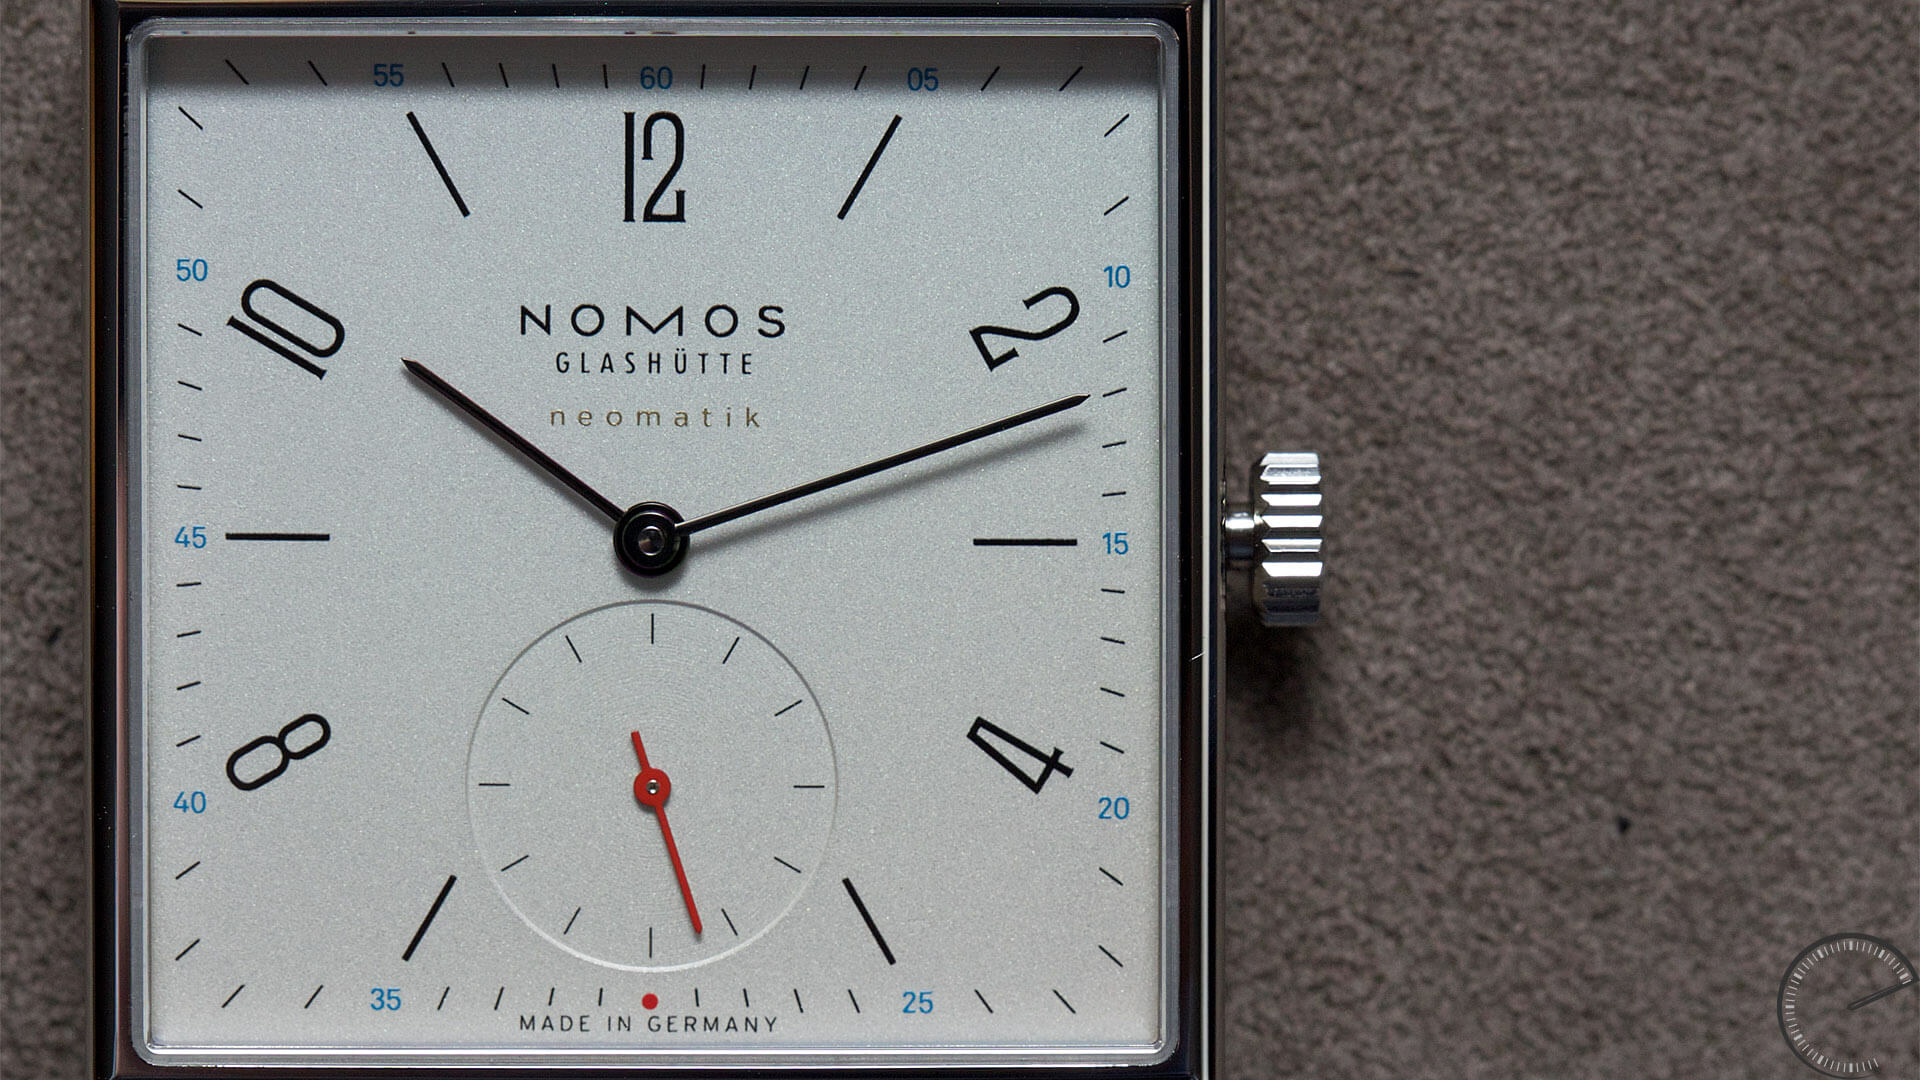 NOMOS_Glashuette_Tetra_neomatik_dial - ESCAPEMENT magazine - watch articles by Angus Davies